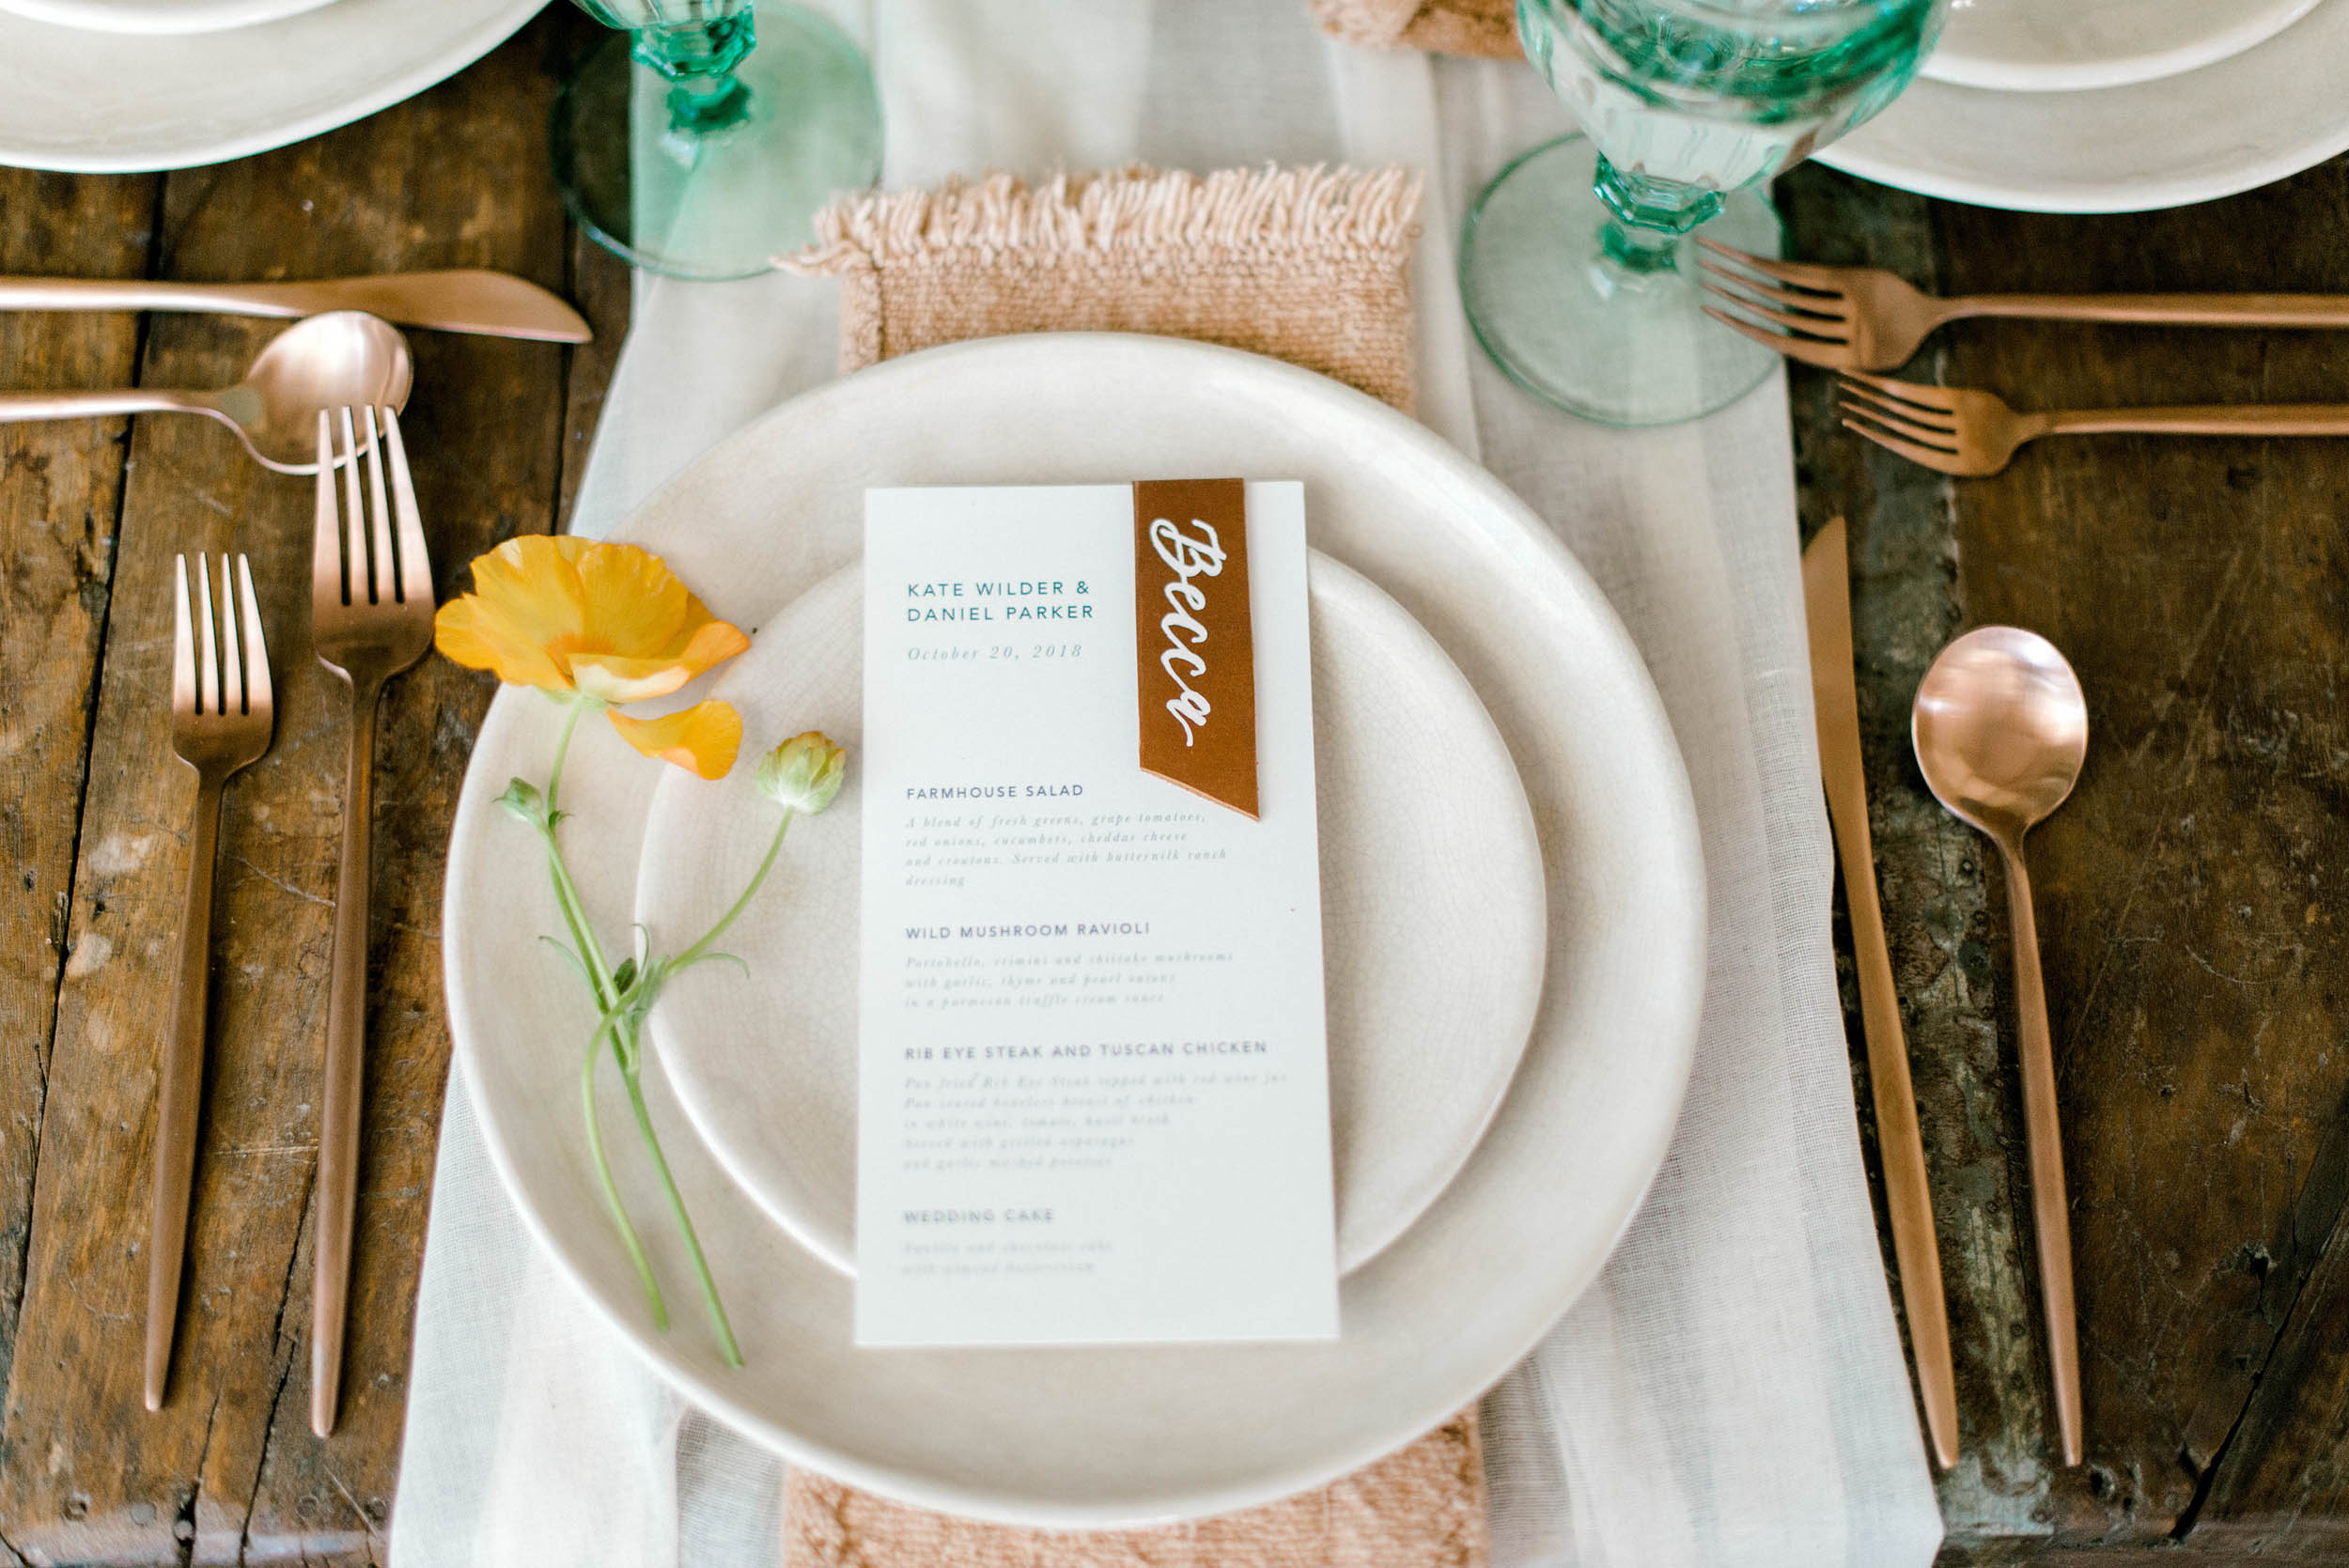 Courtney Leigh Photography_Dreams and Nostalgia_Wedding Menu_Leather Place Card_Calligraphy.jpg